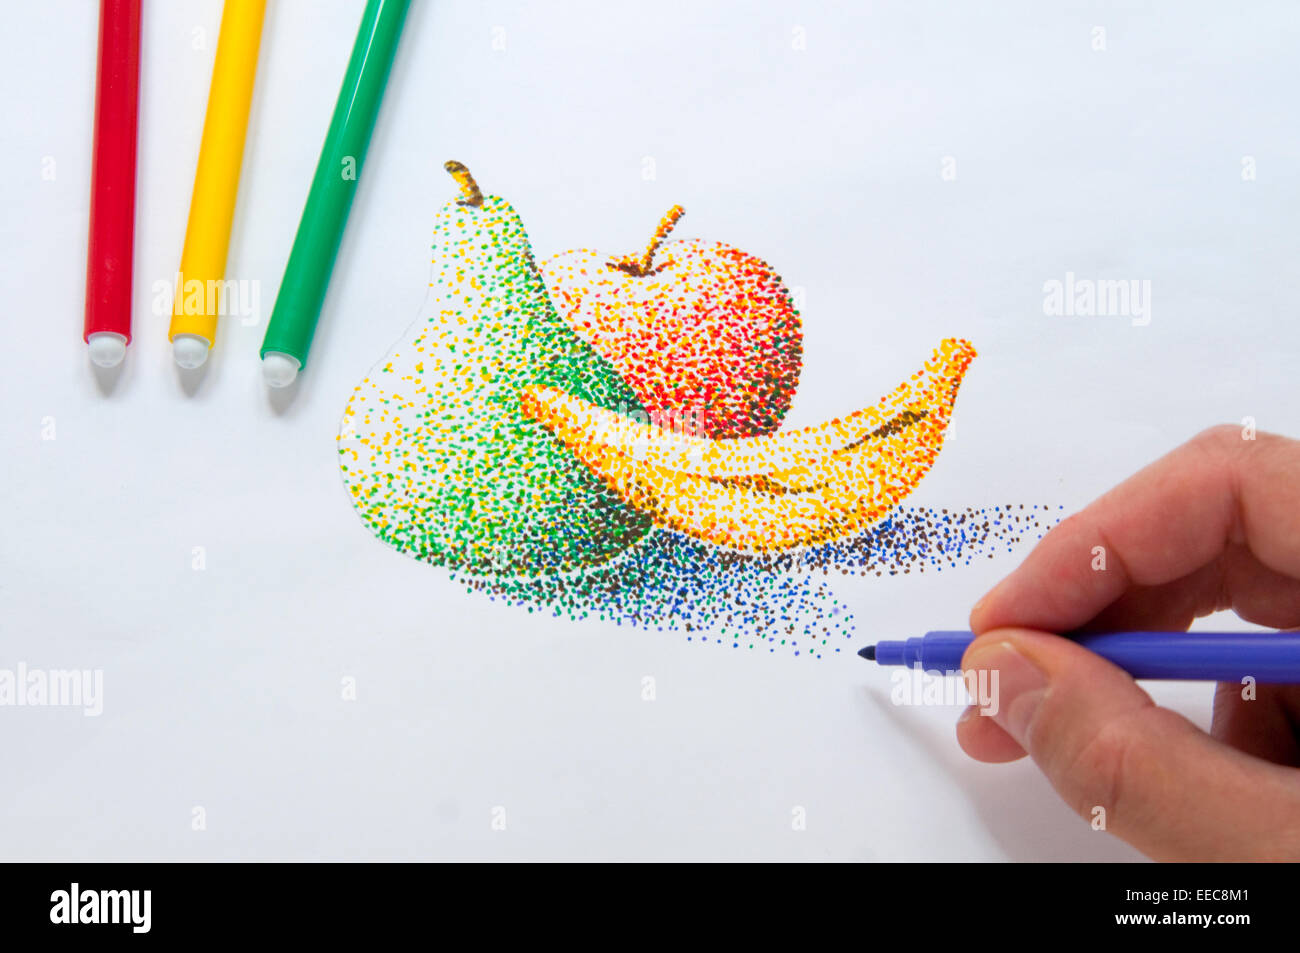 Man's hand making a pointillism drawing with color markers. Close view. - Stock Image